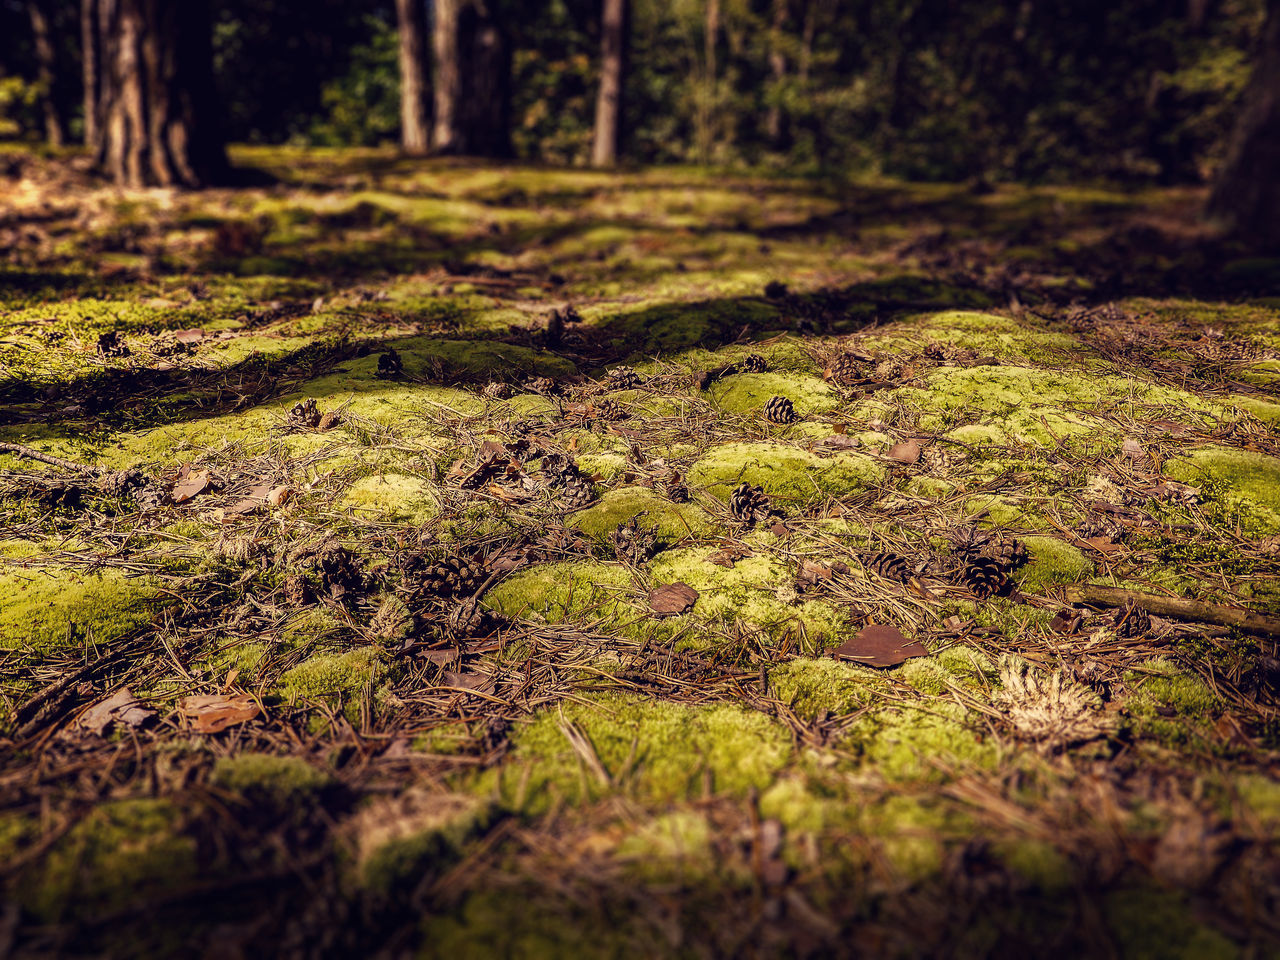 Beauty In Nature Day Forest Fragility Green Green Color Growth Majestic Moss Nature No People Non-urban Scene Outdoors Scenics Selective Focus Surface Level Tourism Tranquil Scene Tranquility Tree Tree Trunk Vacations Wilderness WoodLand